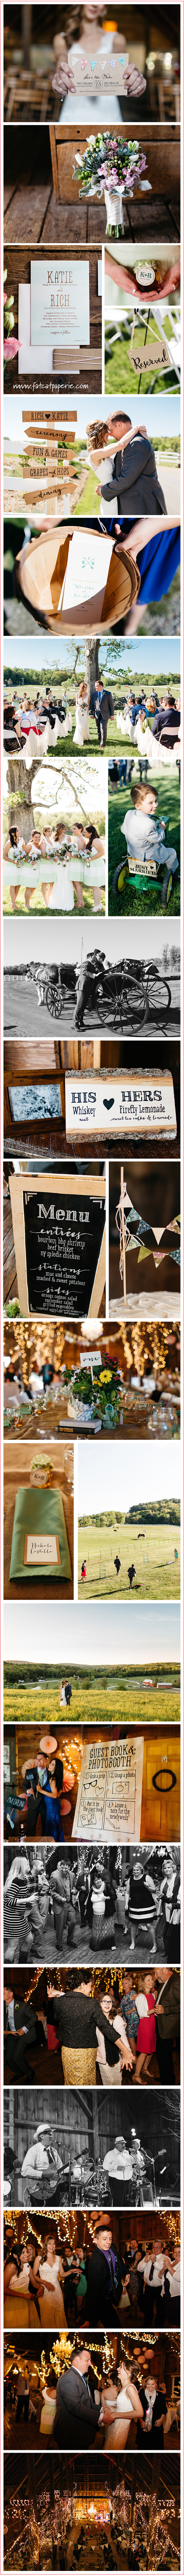 Real_Wedding: Katie and Rich | Photos of a rustic barn wedding — invitations, bunting, favor tags, flowers etc.